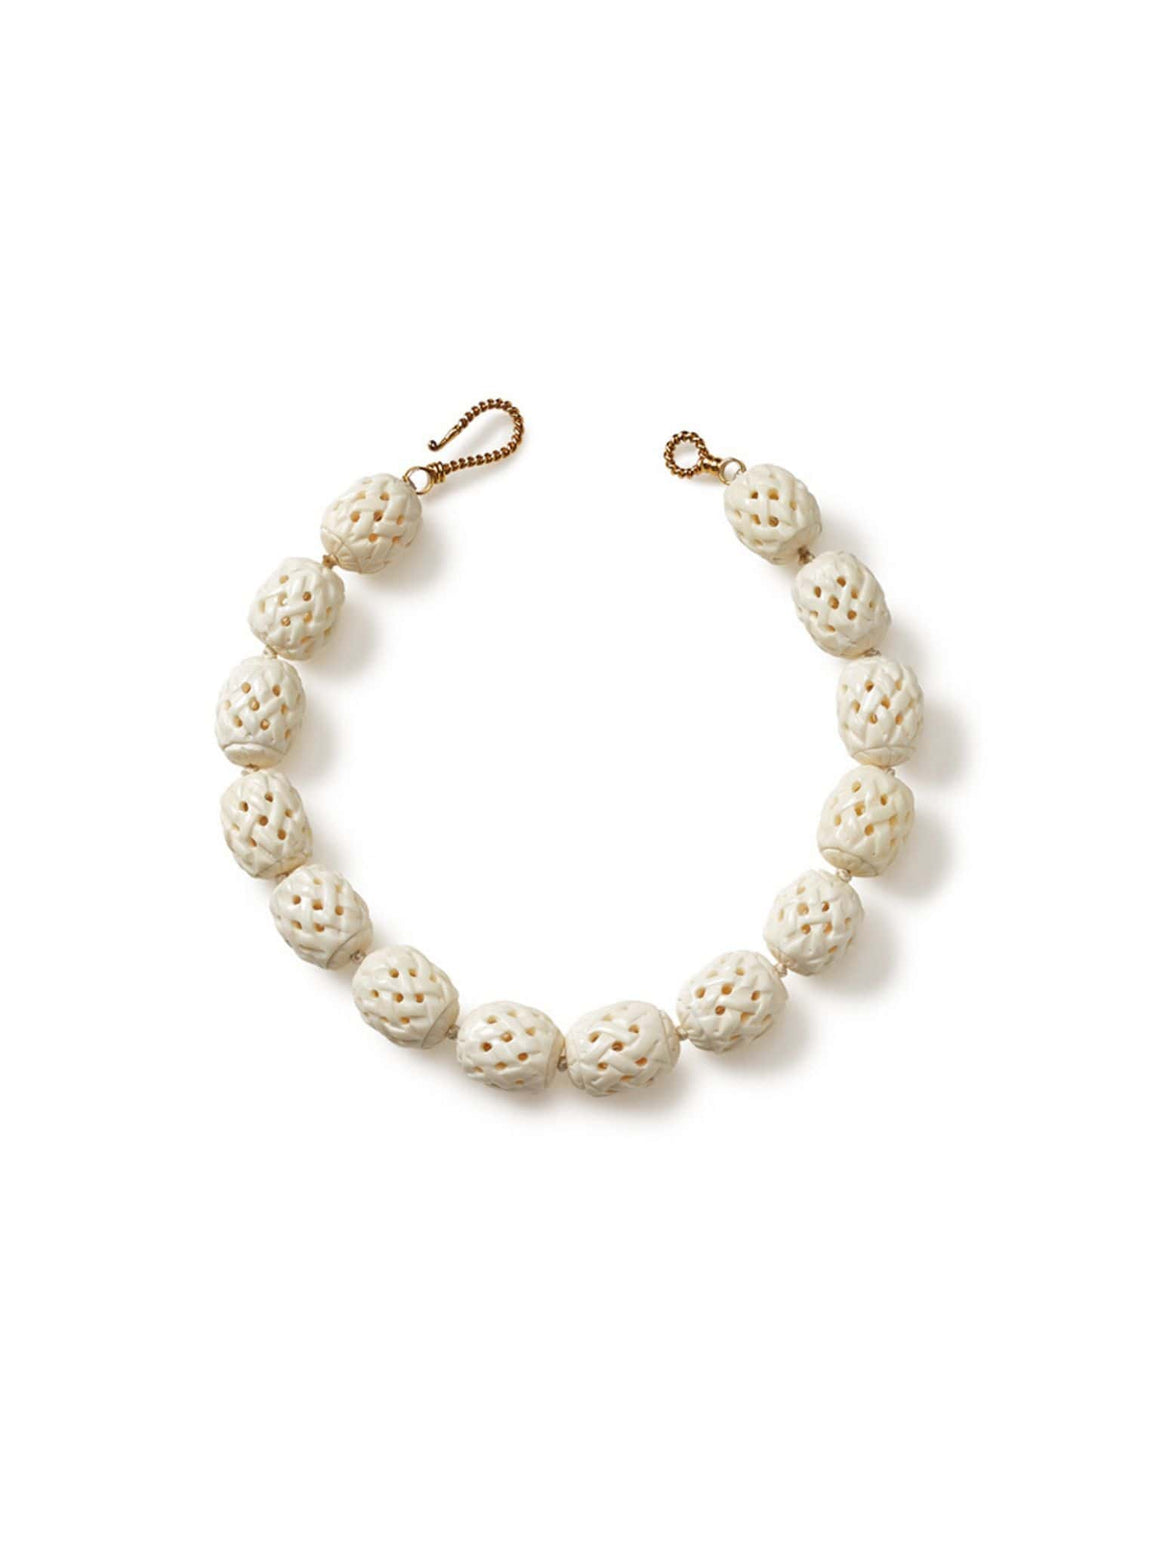 Ivory Color Bone Basket Weave Necklace